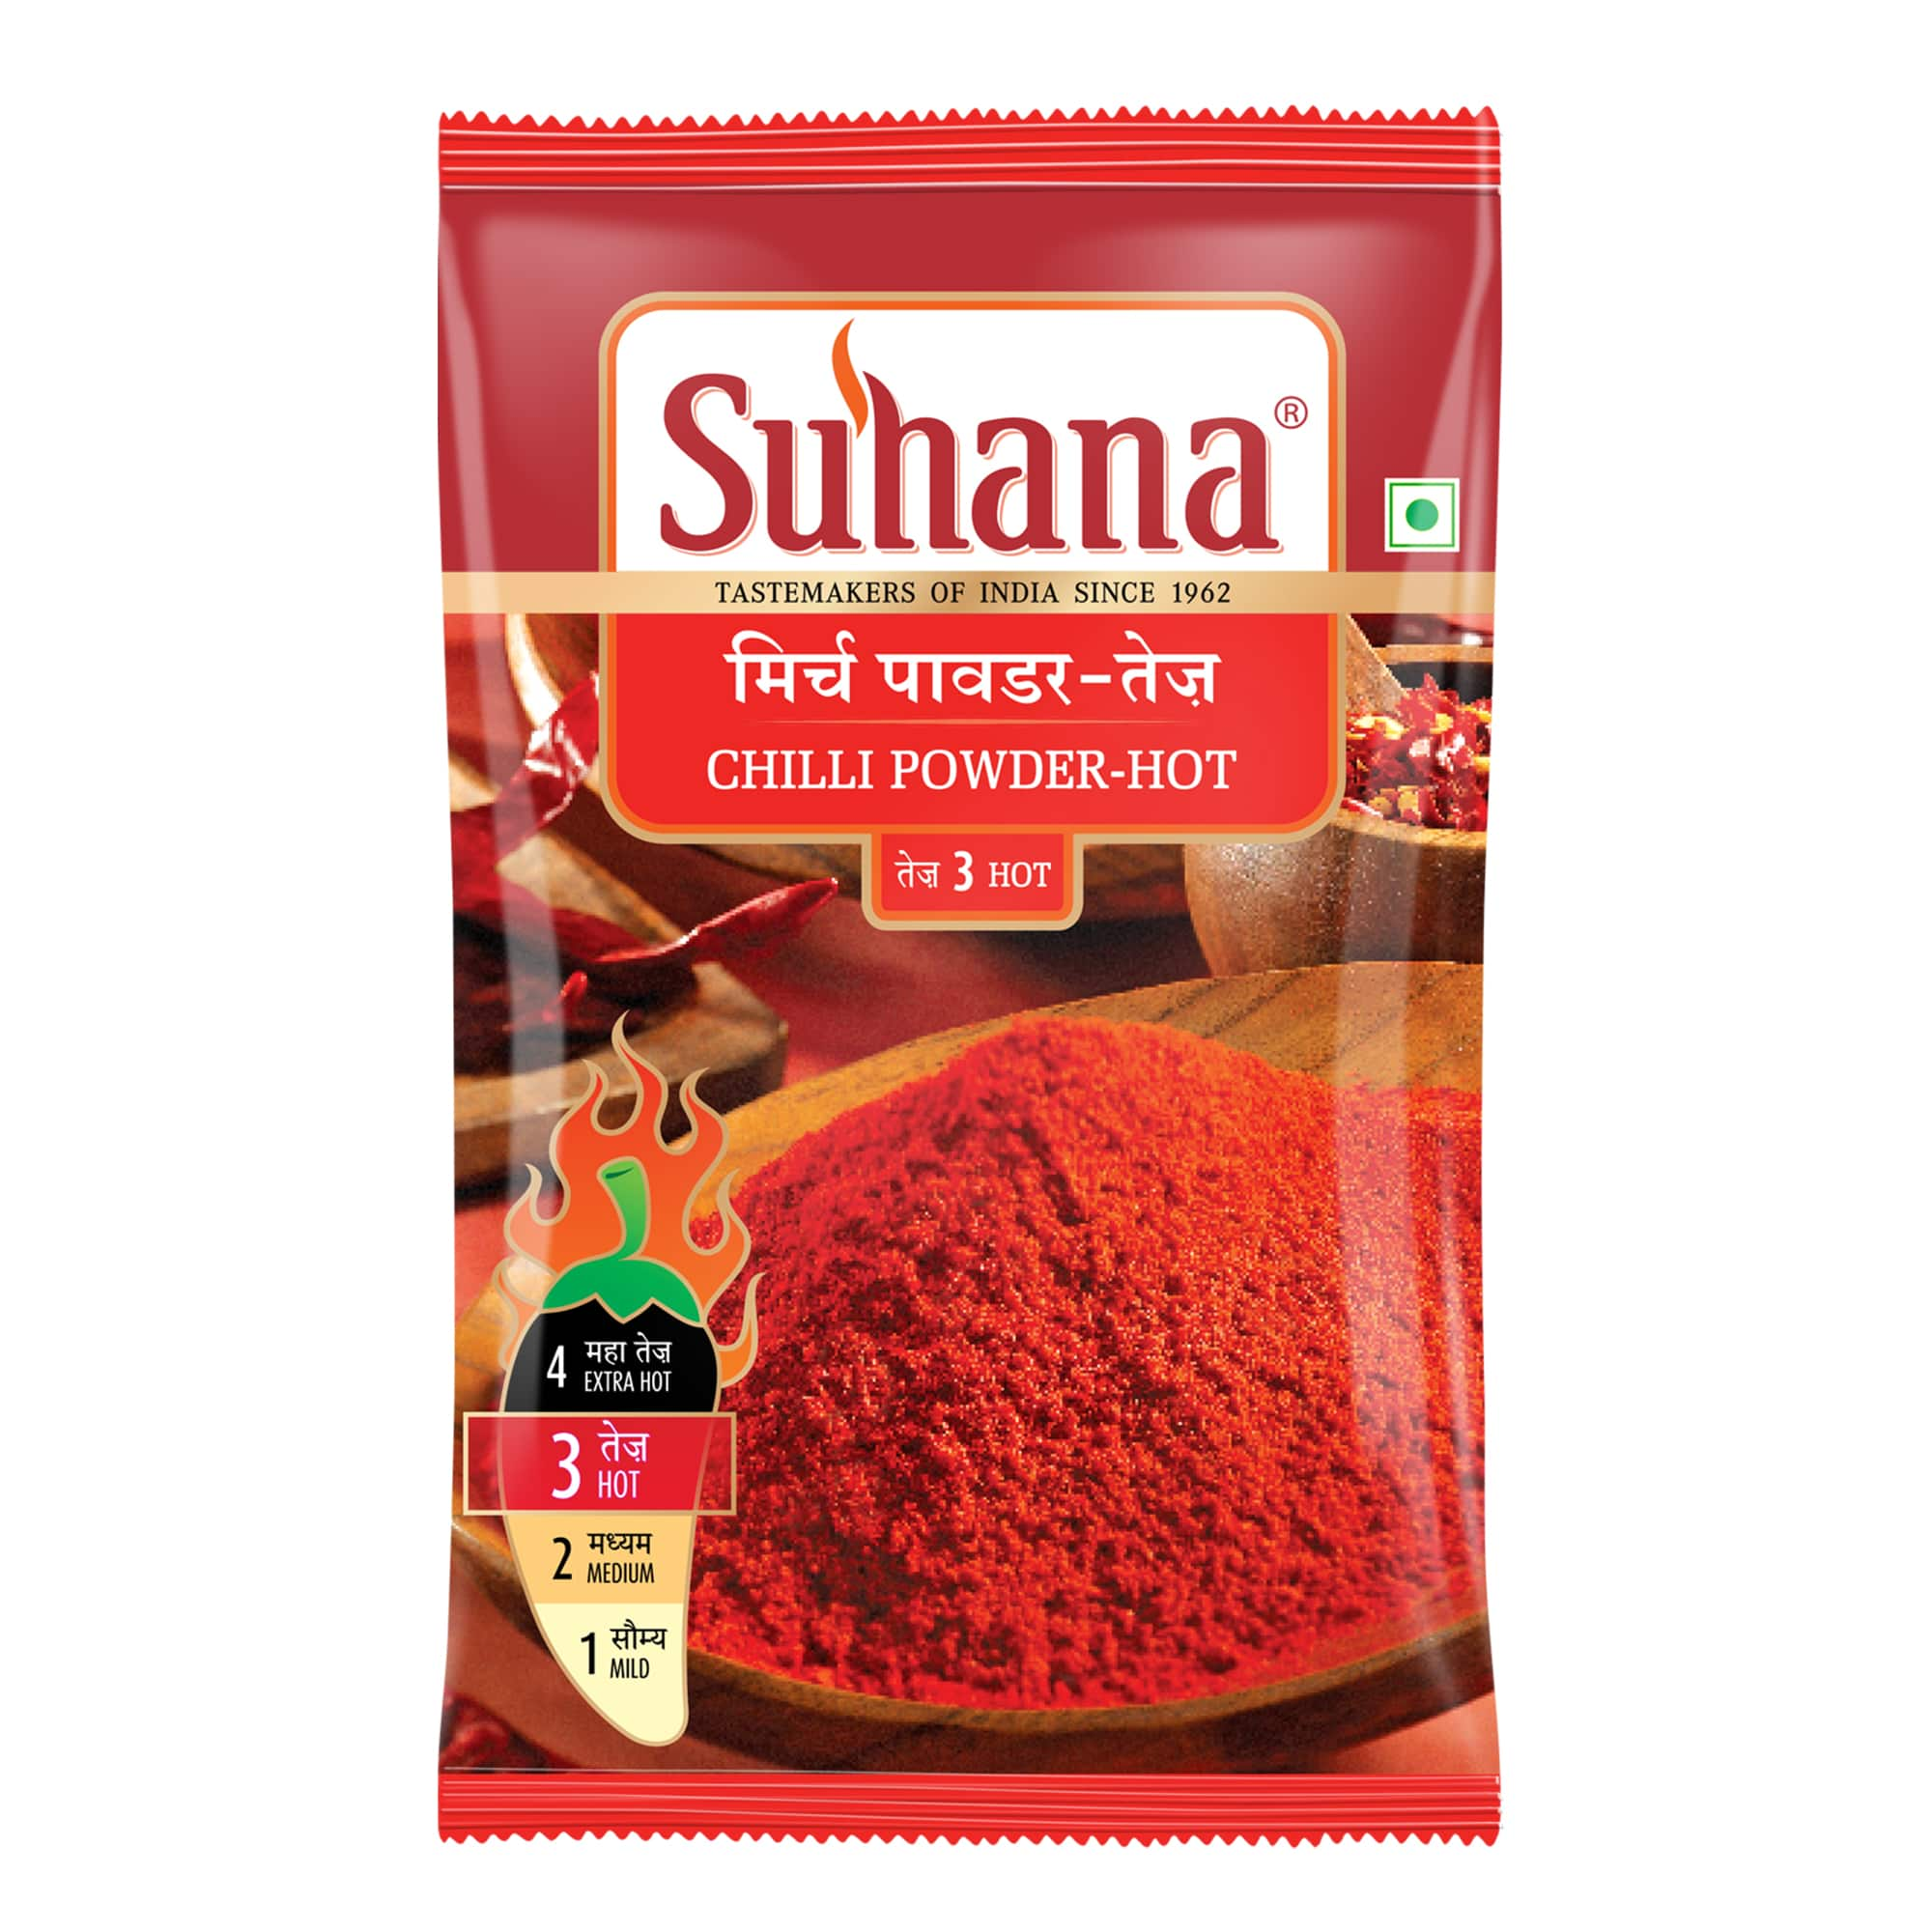 Suhana Hot Chilli Powder Pouch